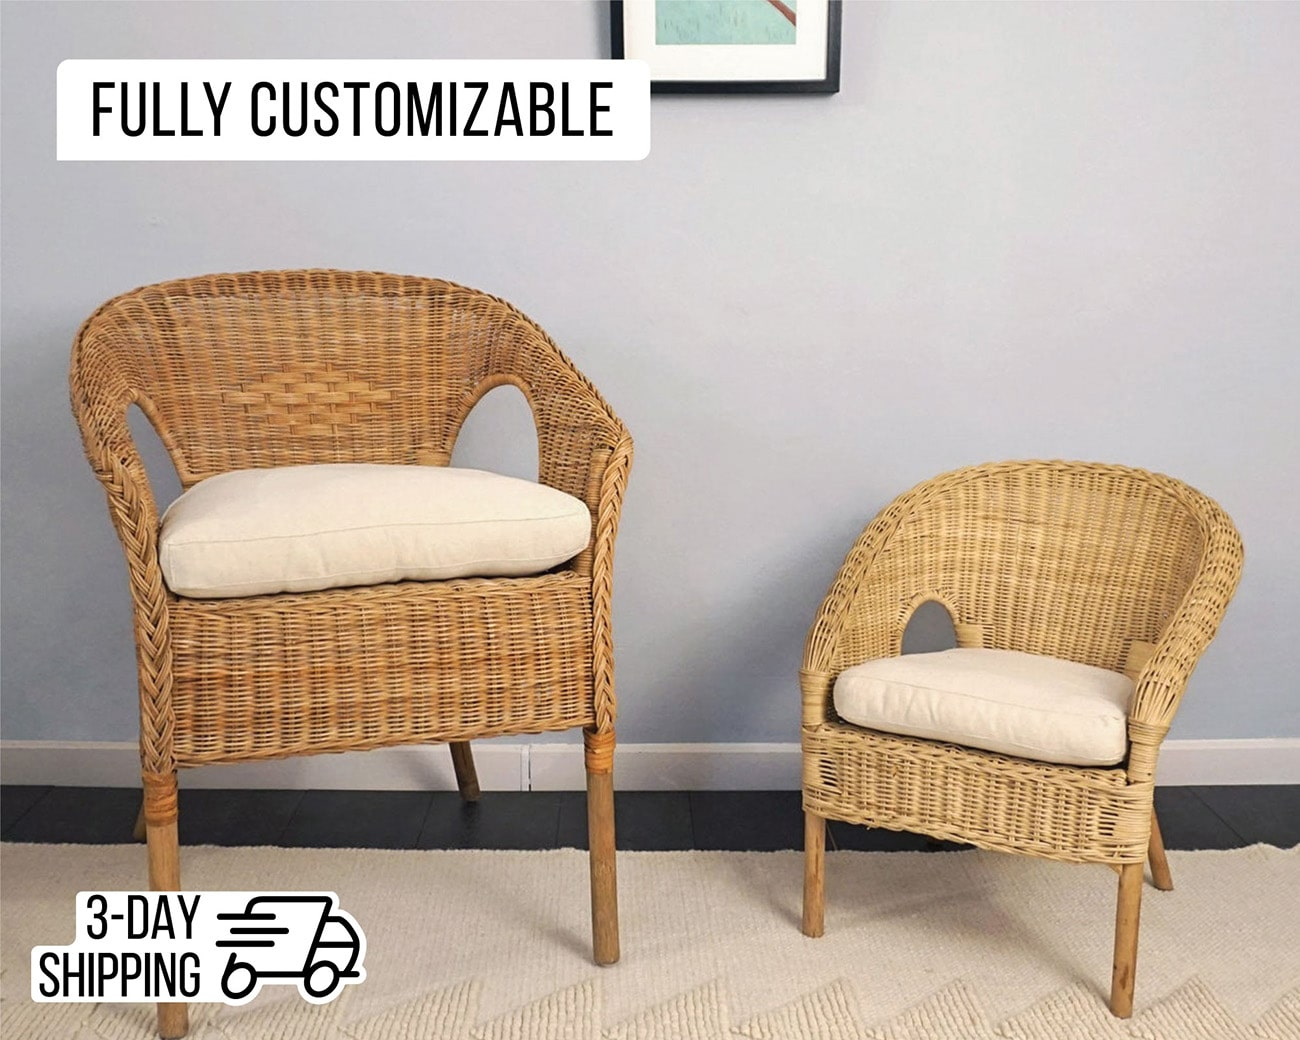 Wool Chair Cushion with Removable Cover